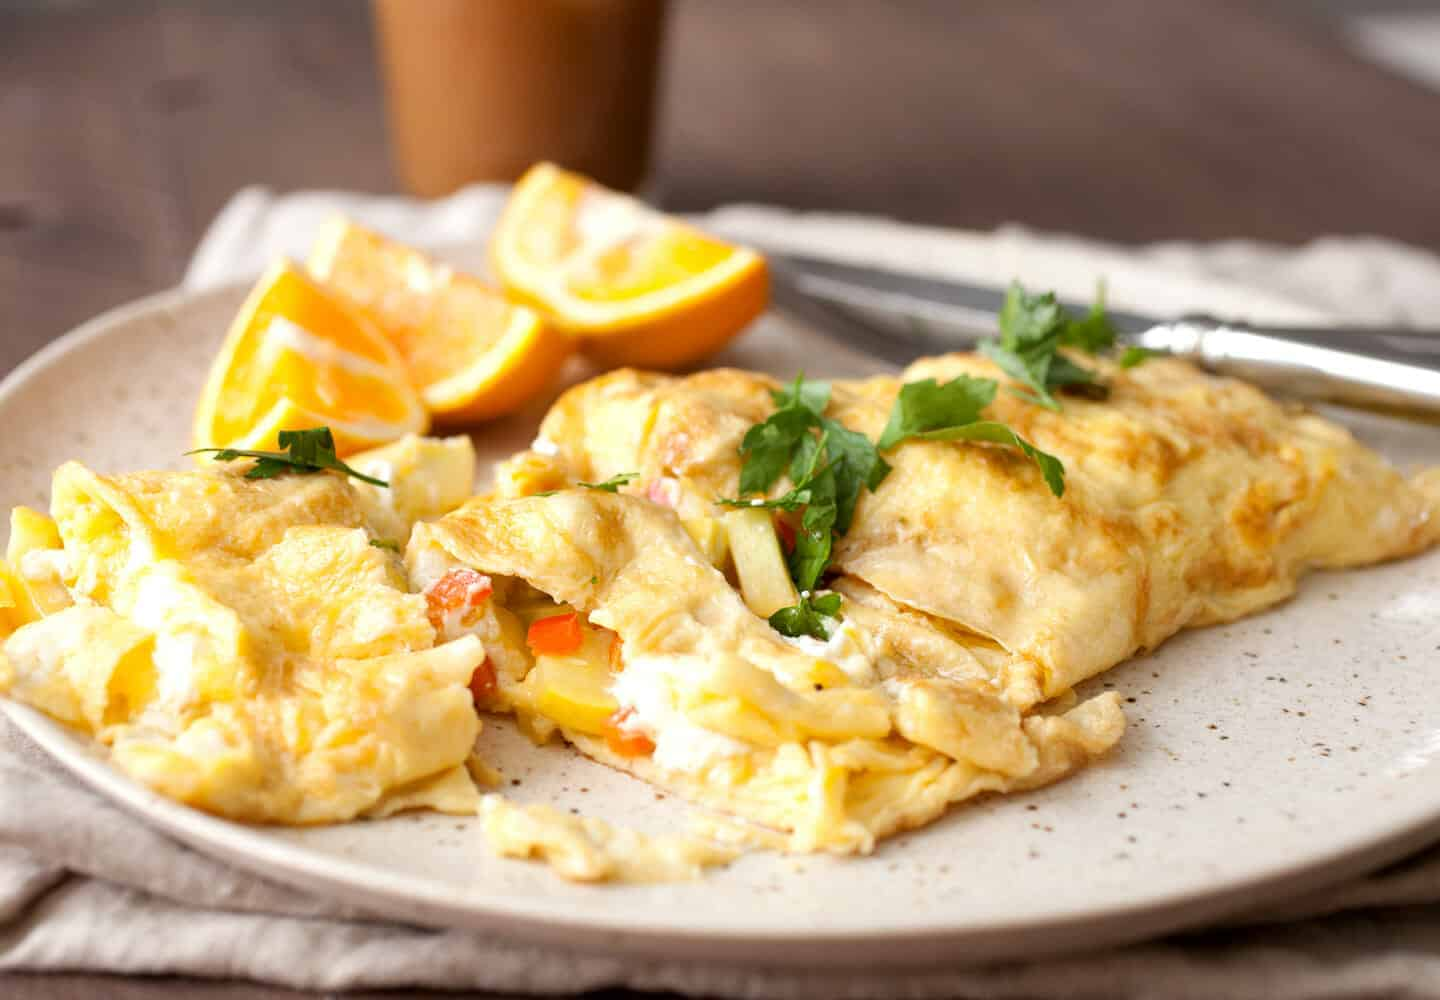 Diner-Style Griddle Omelet: This is how to make a super-packed diner-style omelet at home using your griddle! One of my favorite quick breakfasts! | macheesmo.com